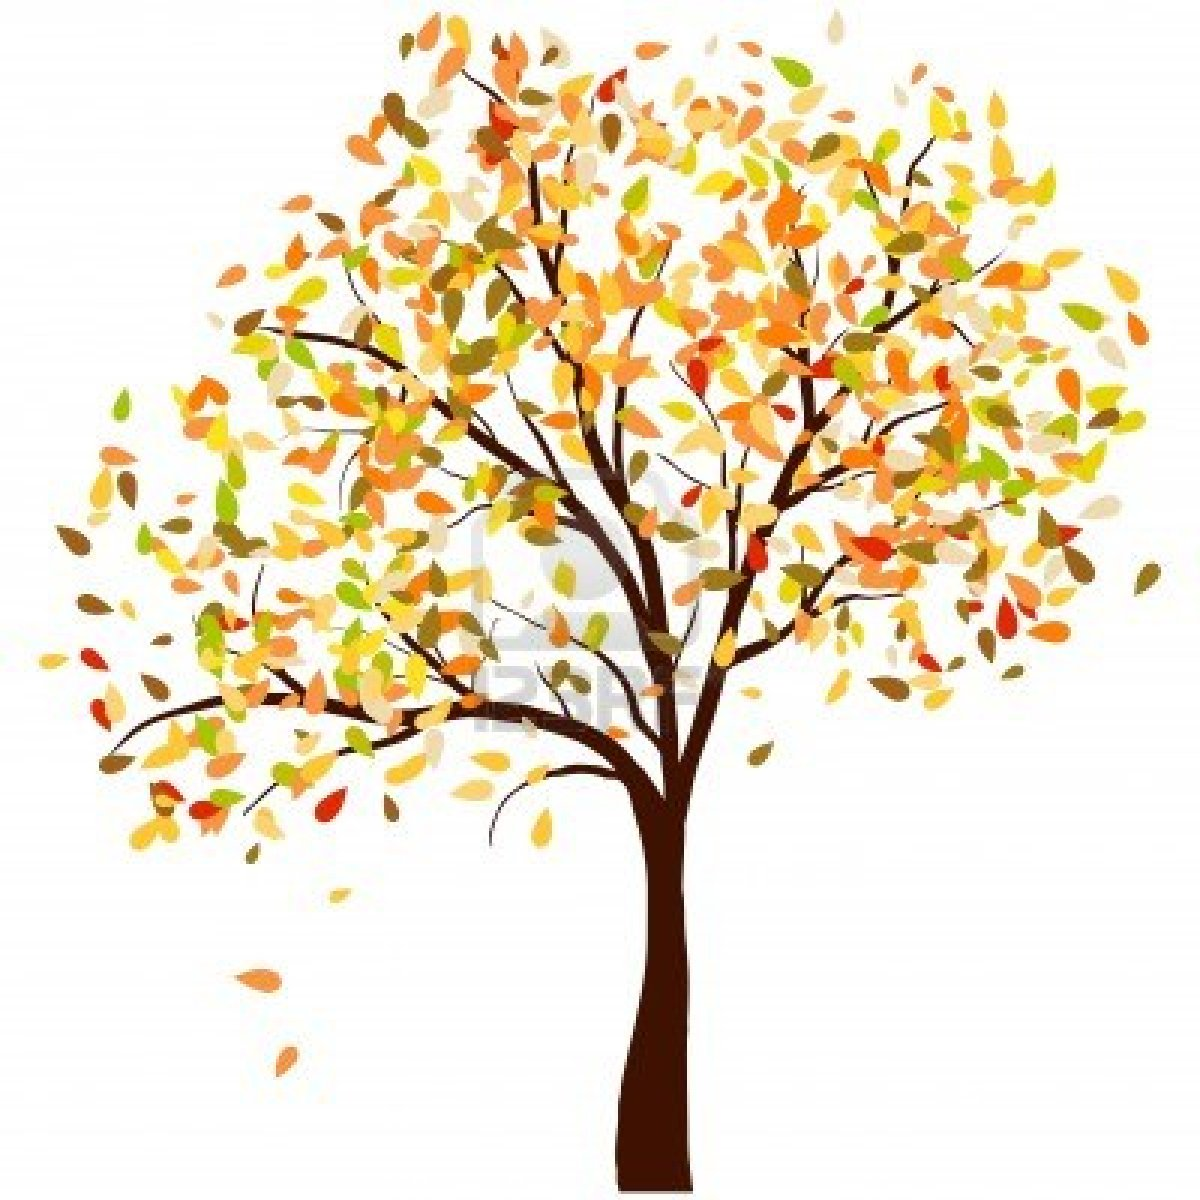 Branch clipart fall leaves Background and Falling autumnAutumn trees